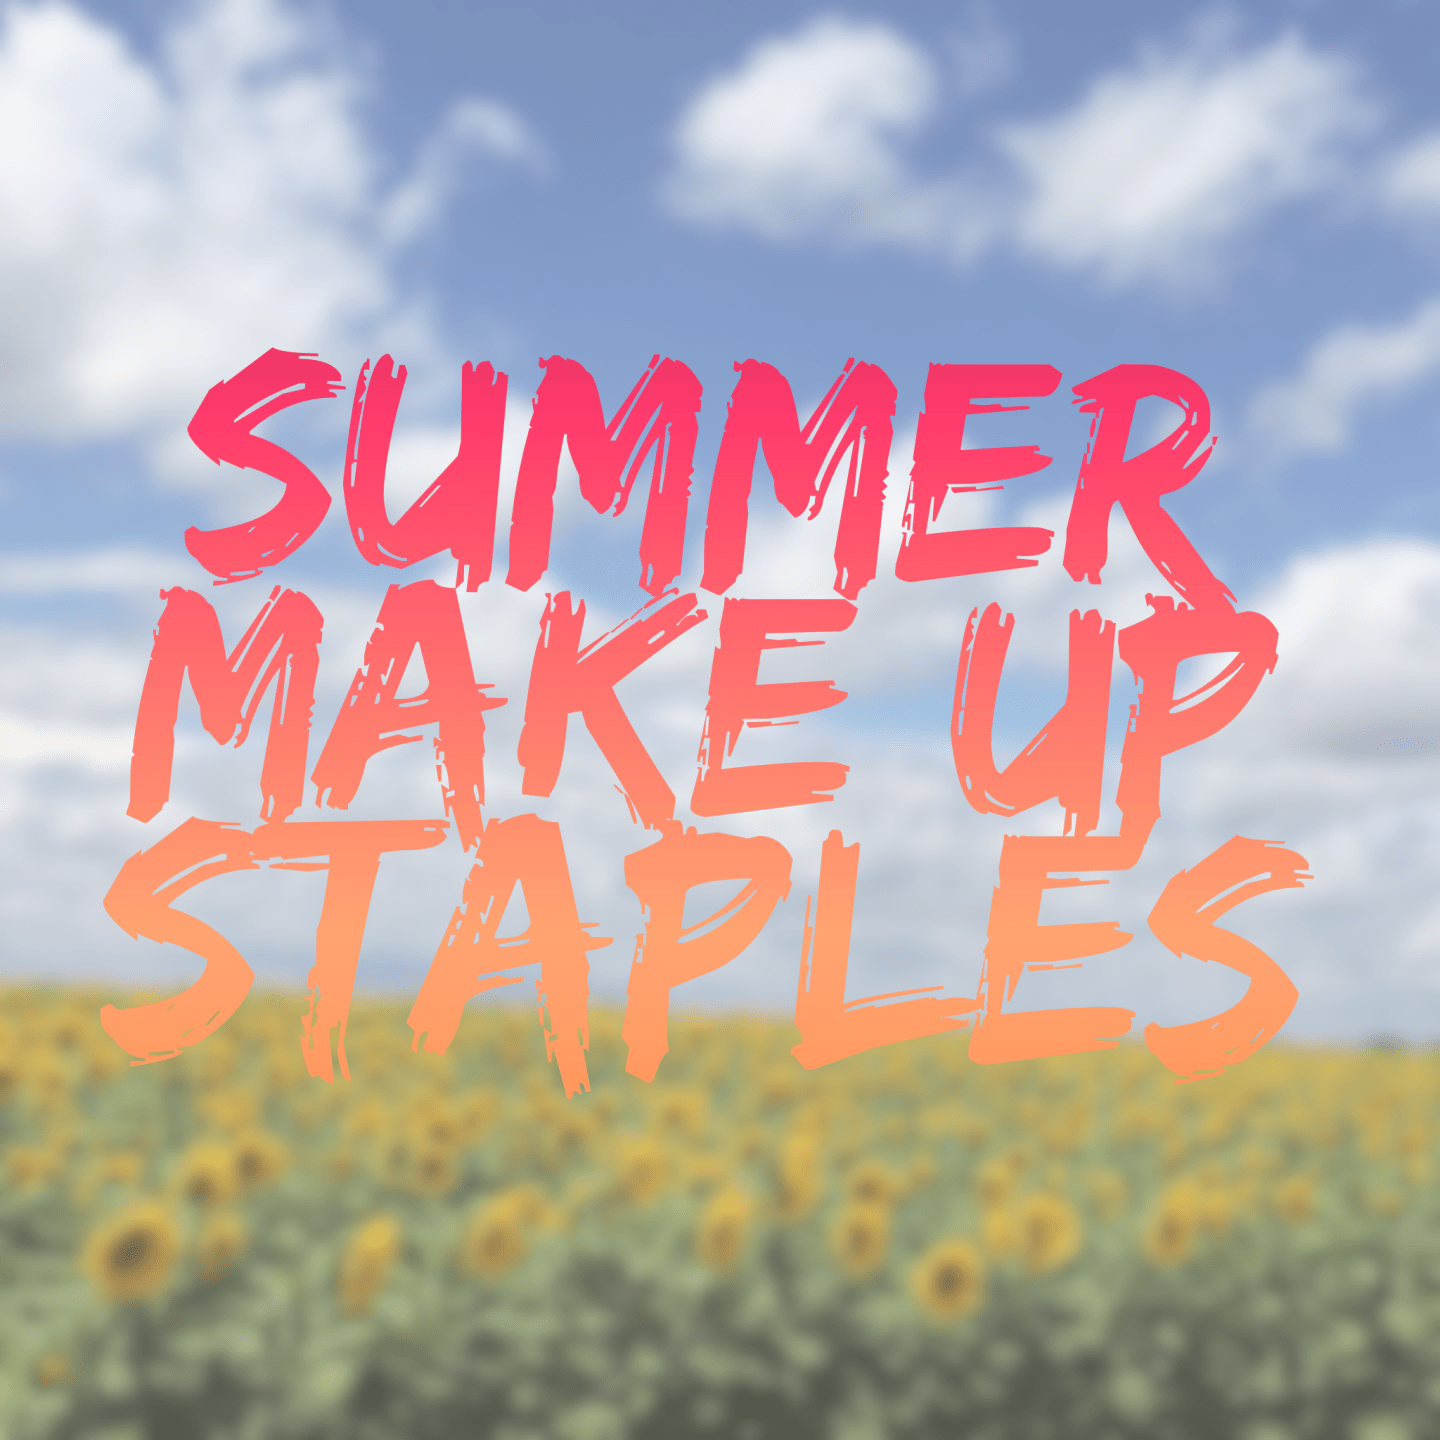 Summer Make Up Staples - Talonted Lex